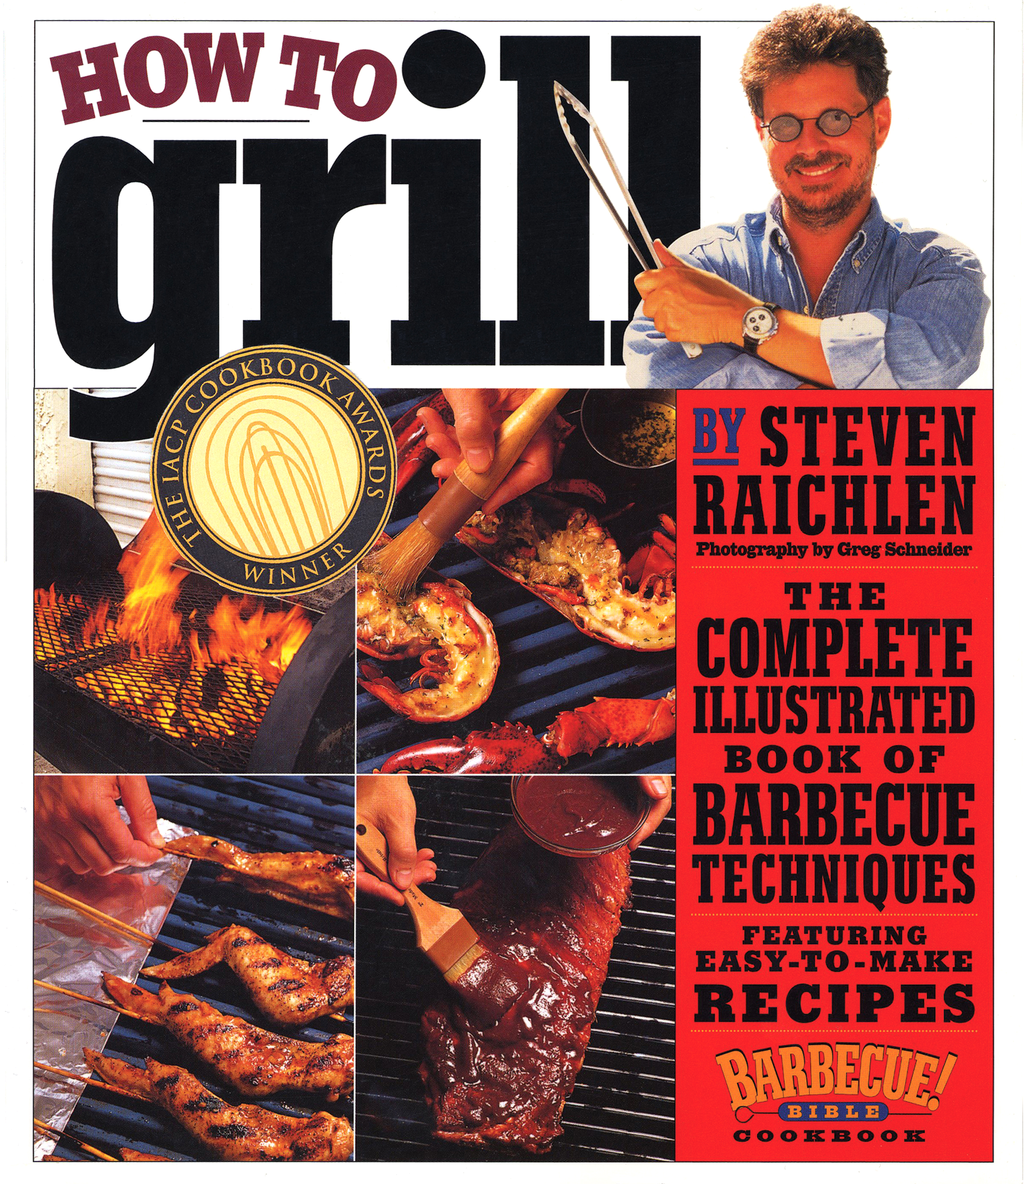 How To Grill: The Complete Illustrated Book Of Barbecue Techniques  A Barbecue Bible! Cookbook By: Steven Raichlen